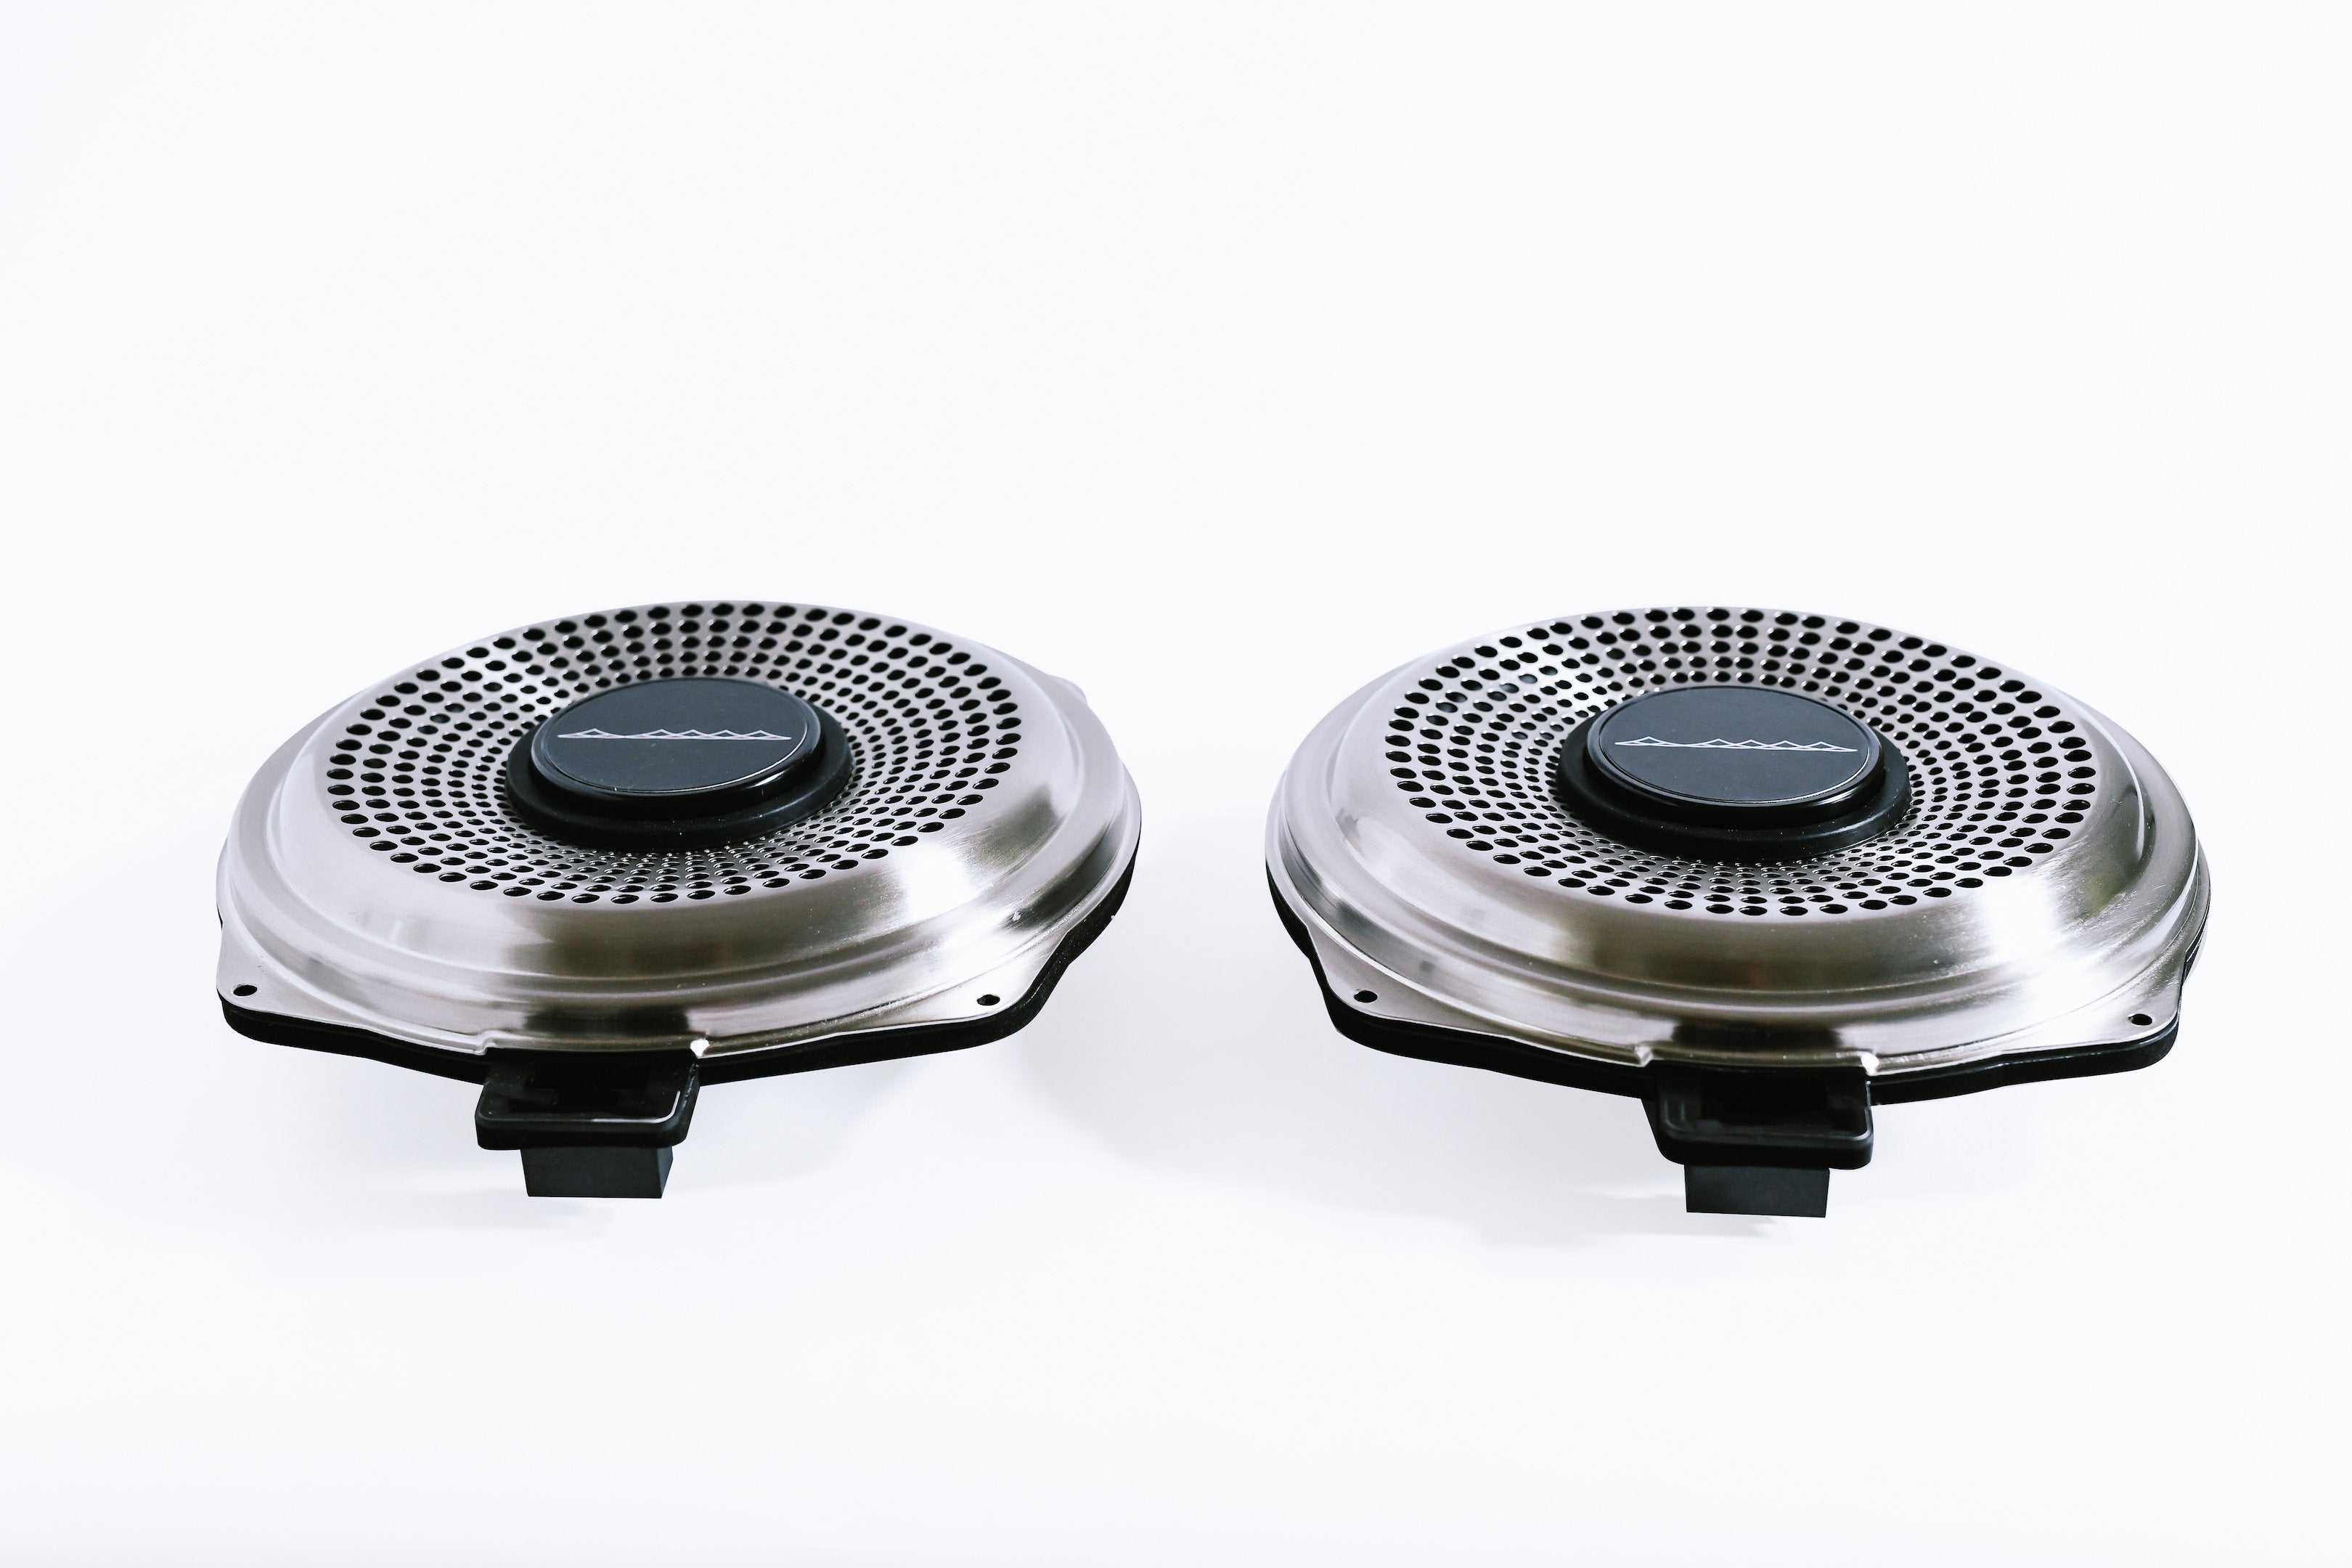 Bavsound Ghost Underseat Subwoofers for BMW G20 3 Series, V2, 2 Ohm, Pair [REQUIRES HEAT GUN & DRILL]